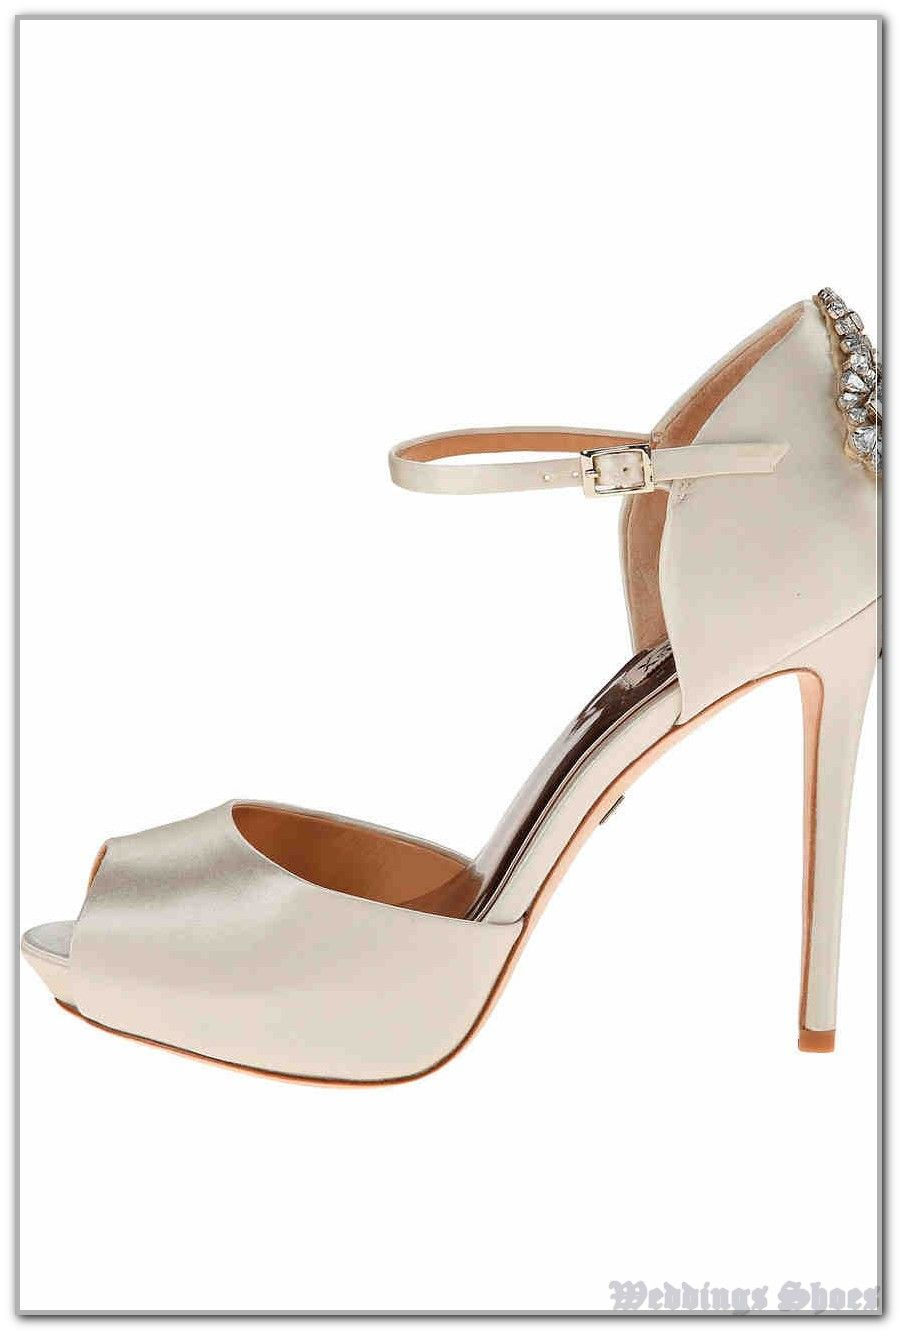 101 Ideas For Wedding Shoes